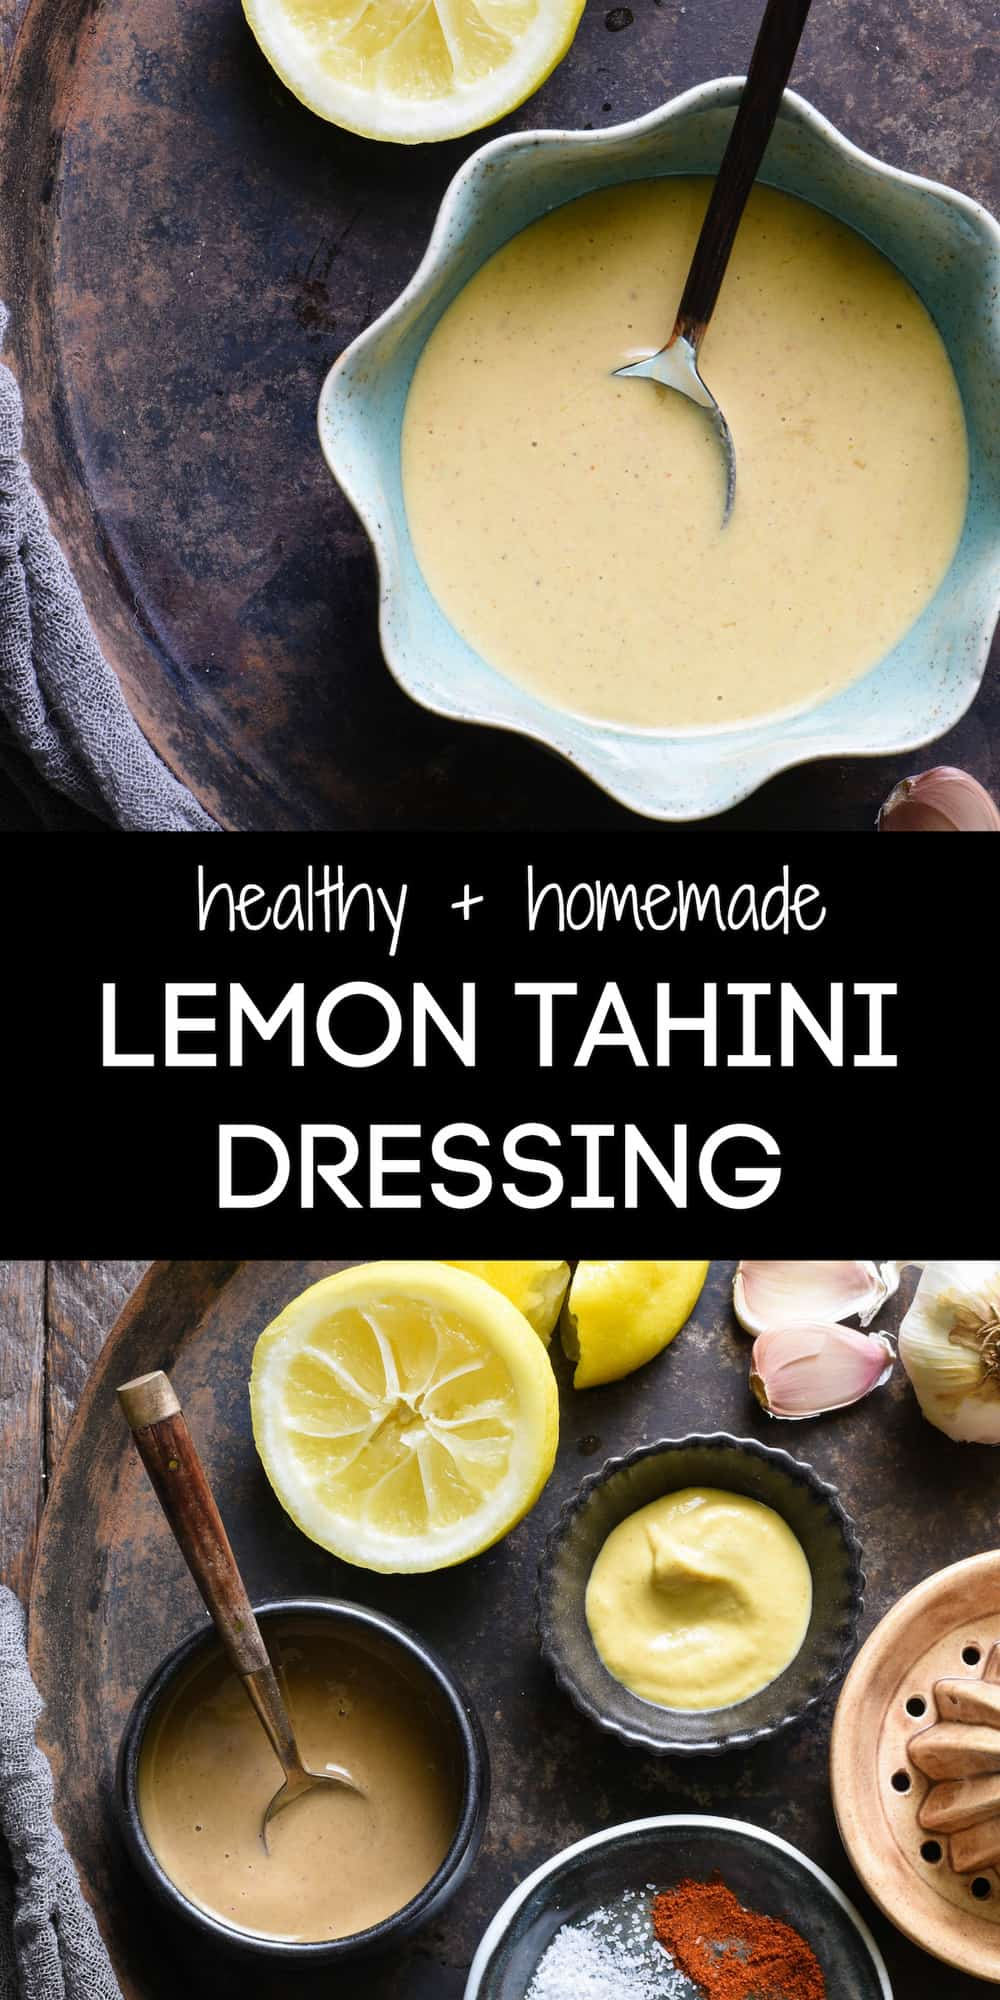 "Collage of images of tahini dressing, plus ingredients for it. Caption says ""healthy + homemade LEMON TAHINI DRESSING."""